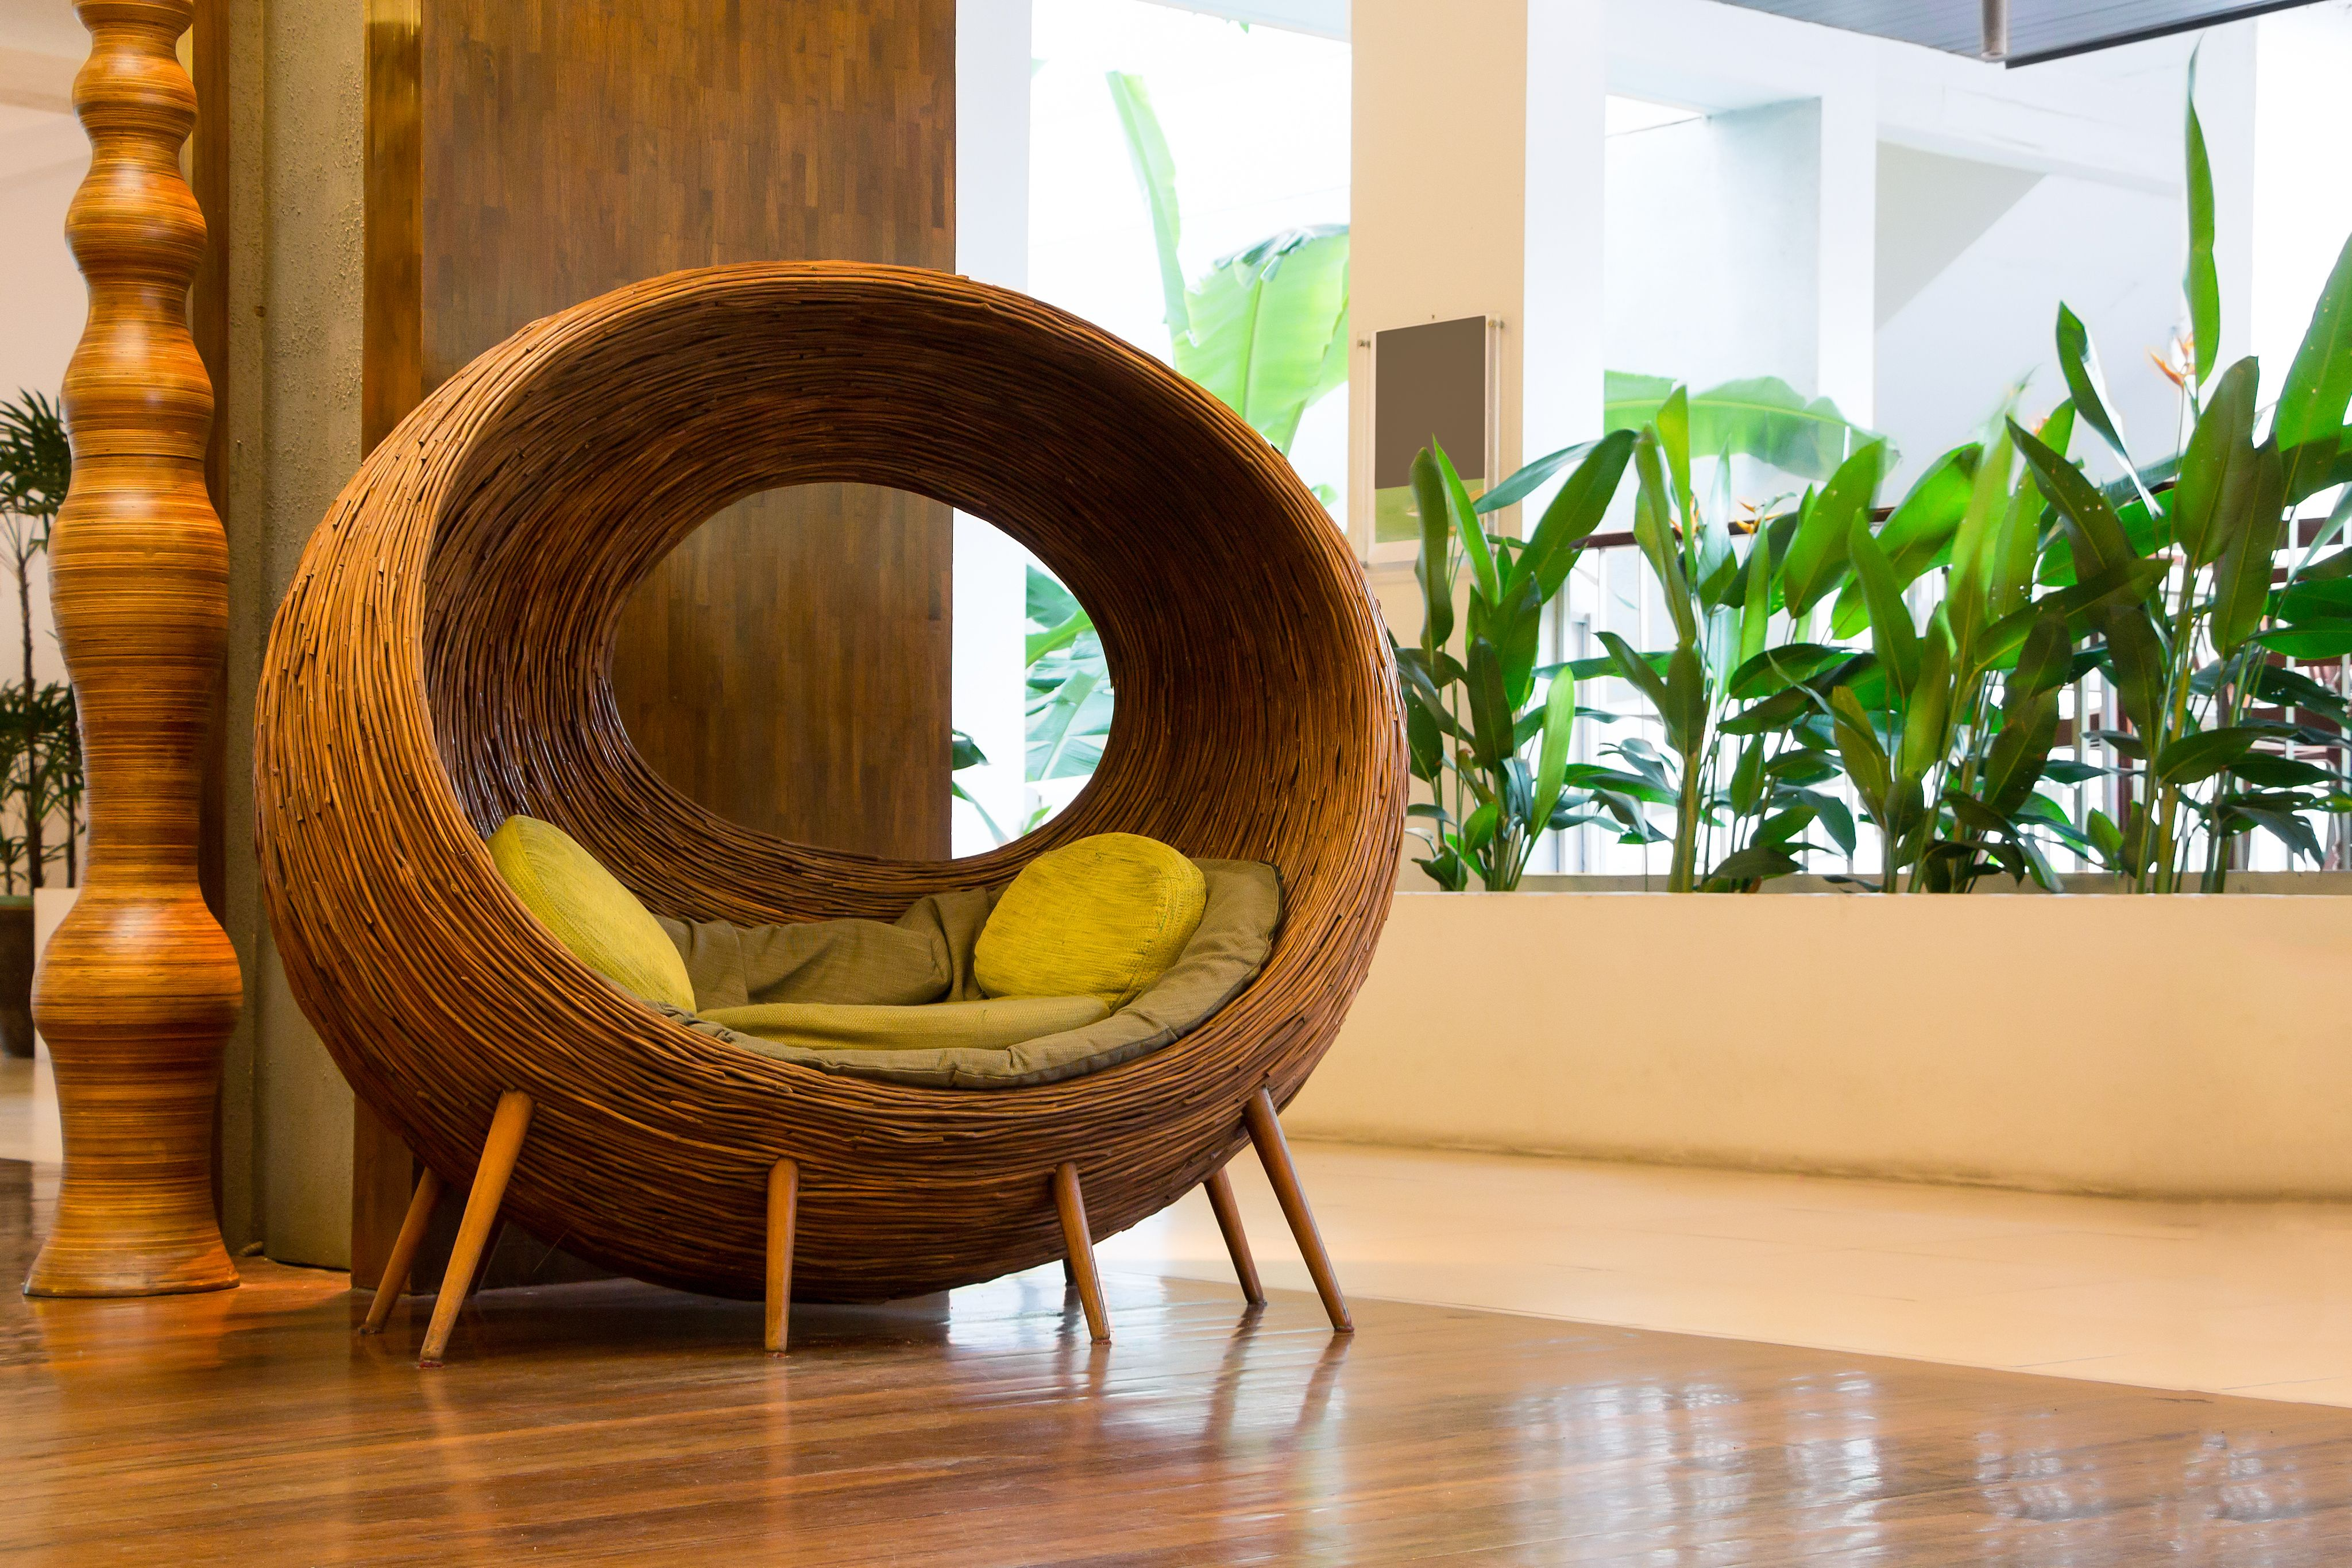 Cane Furniture Which Is Also Known As Rattan Furniture Or Wicker Furniture  Is Basically Made Of The Stems Of The Rattan Plant.